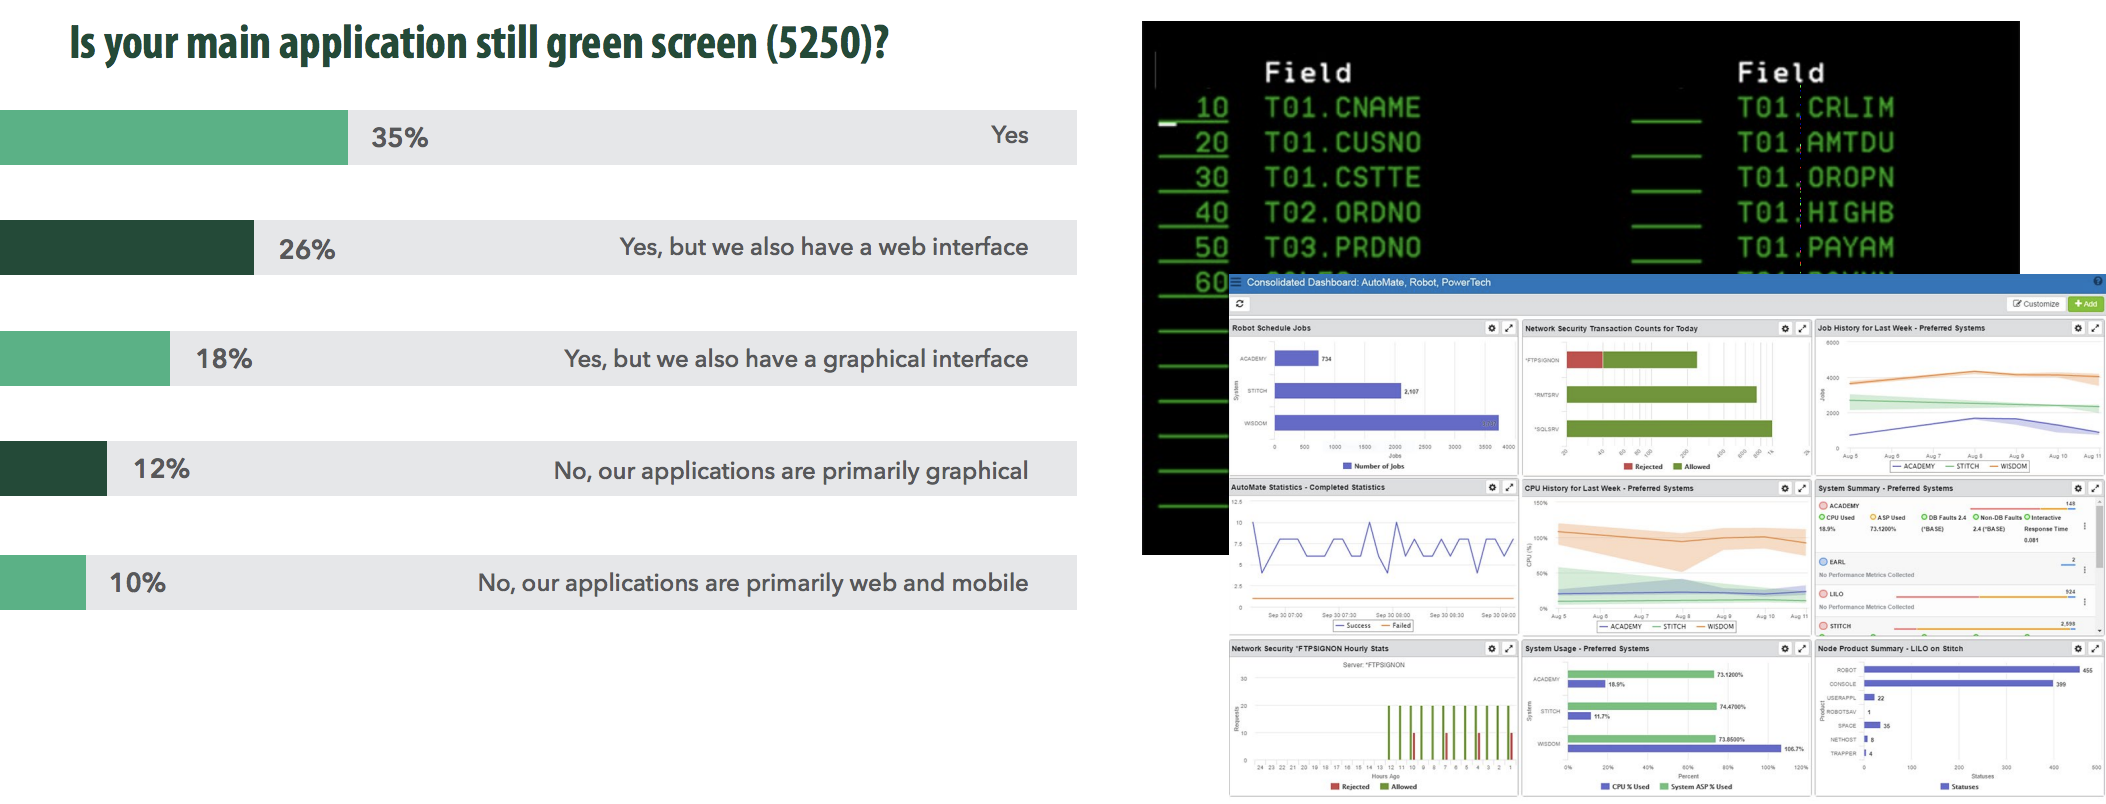 Application of green screen (5250) bar graph